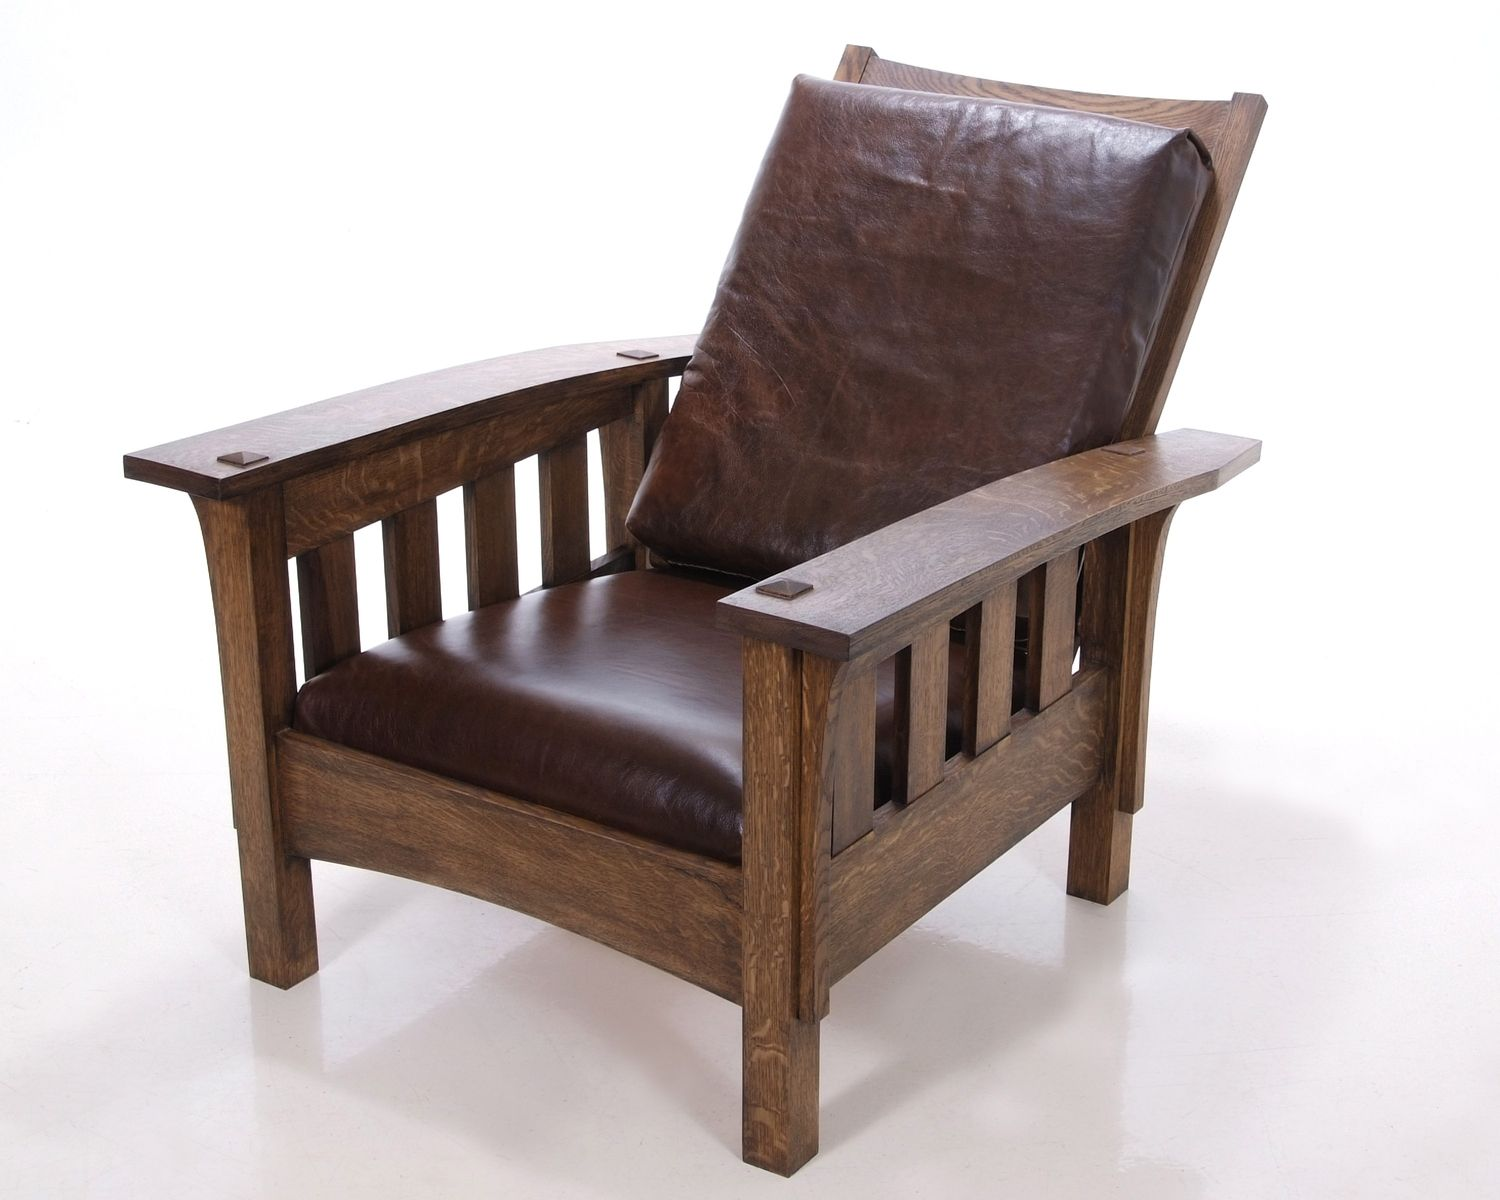 Mission Chairs Hand Crafted Morris Chair By Kauffman Fine Furniture